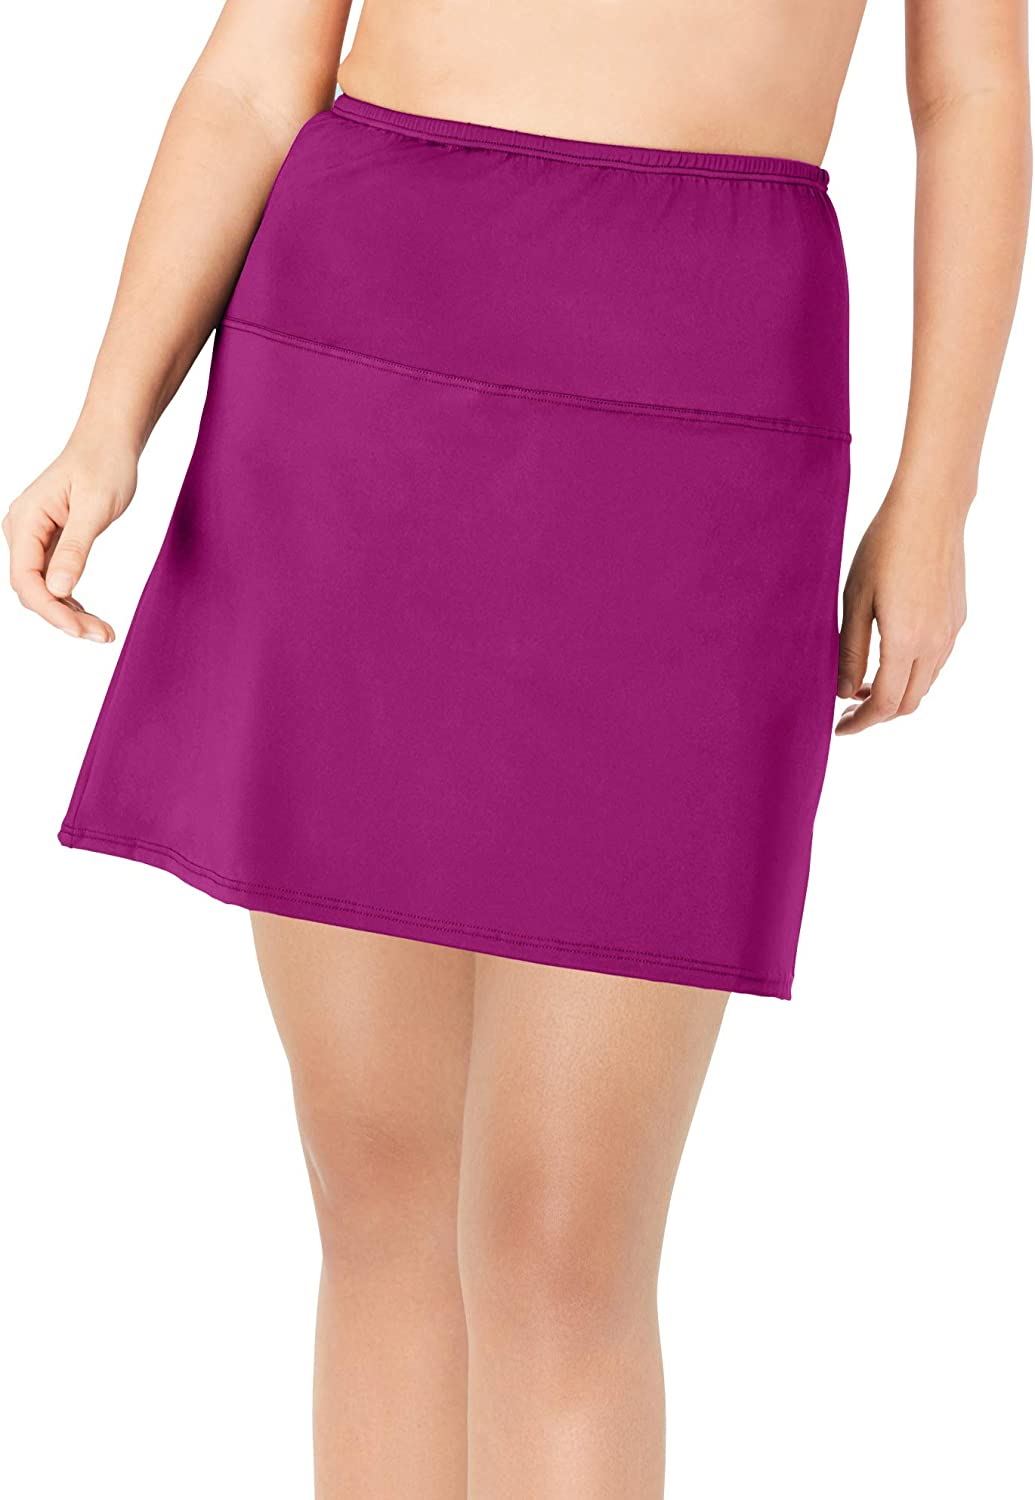 Swimsuits For All Women's Plus Size High-Waisted Swim Skirt with Built-in Brief Swimsuit Bottoms